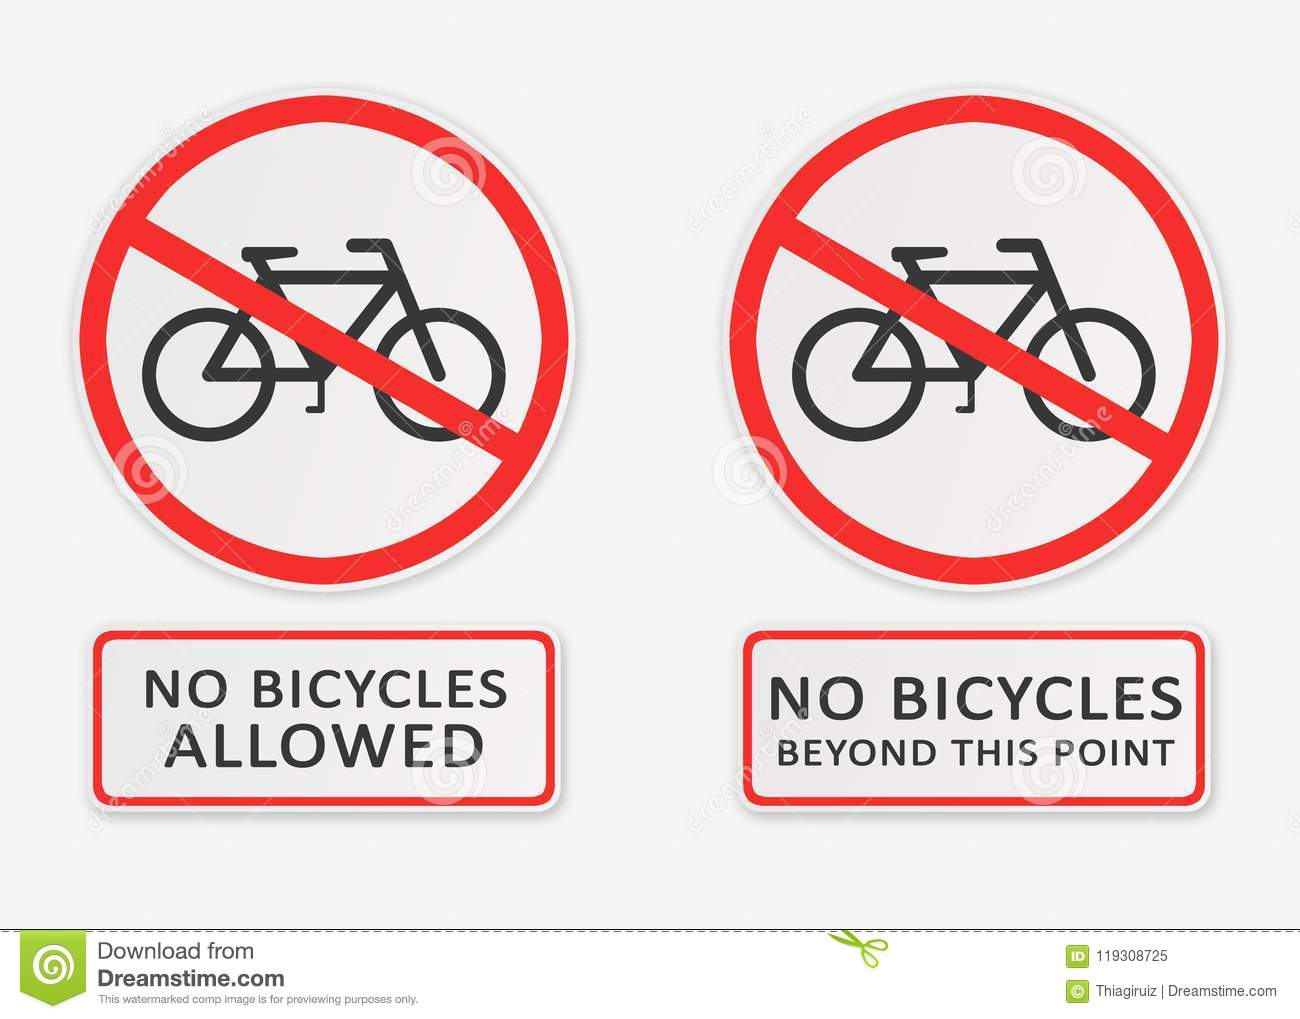 No Bicycles Allowed And No Bicycles Beyond This Point Signs Stock Illustration Illustration Of Bicycles Bike 119308725